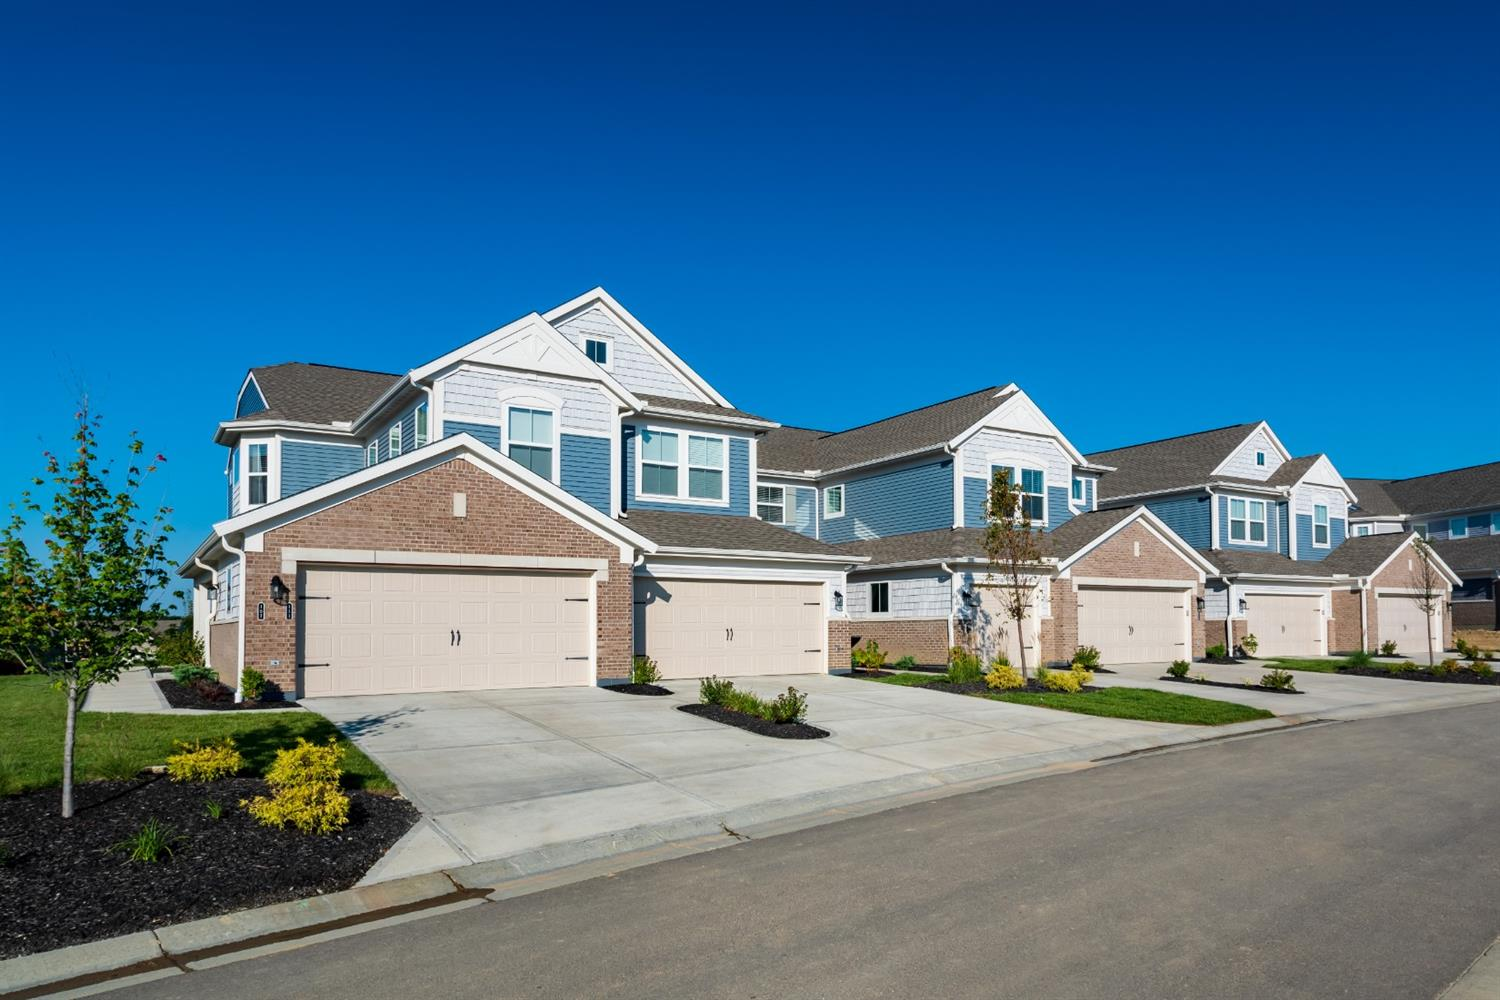 Property for sale at 182 Rippling Brook Lane Unit: 22301, Springboro,  Ohio 45066